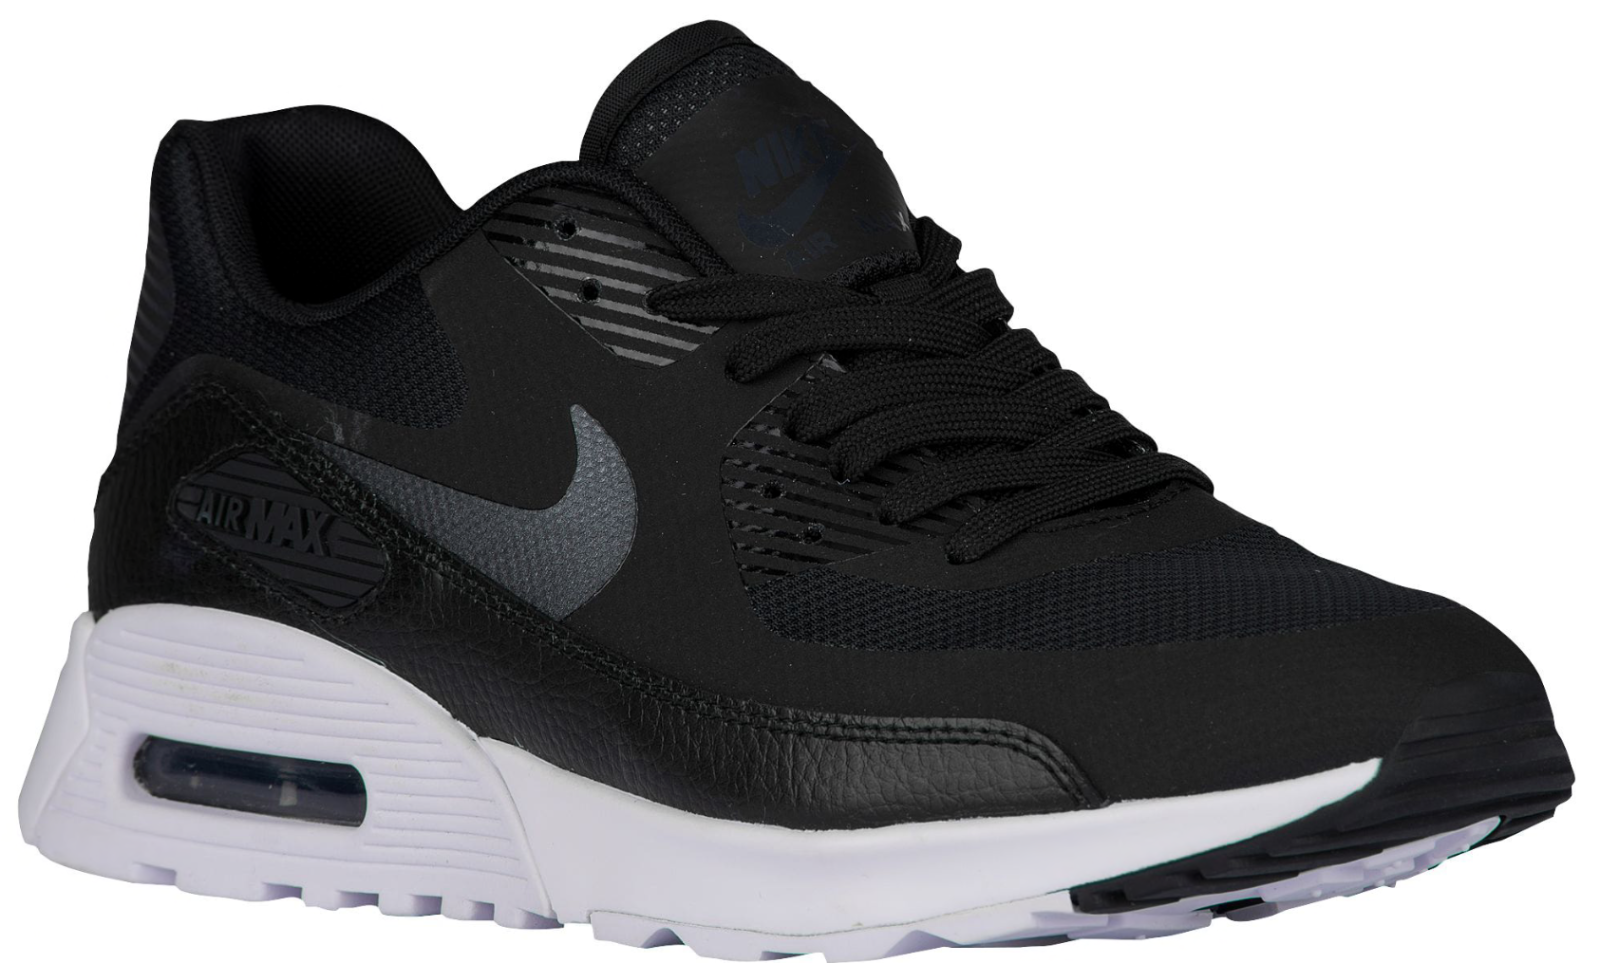 NEW Femme Nike Air Max 90 Ultra 2.0 chaussures Taille: 11 Color: noir